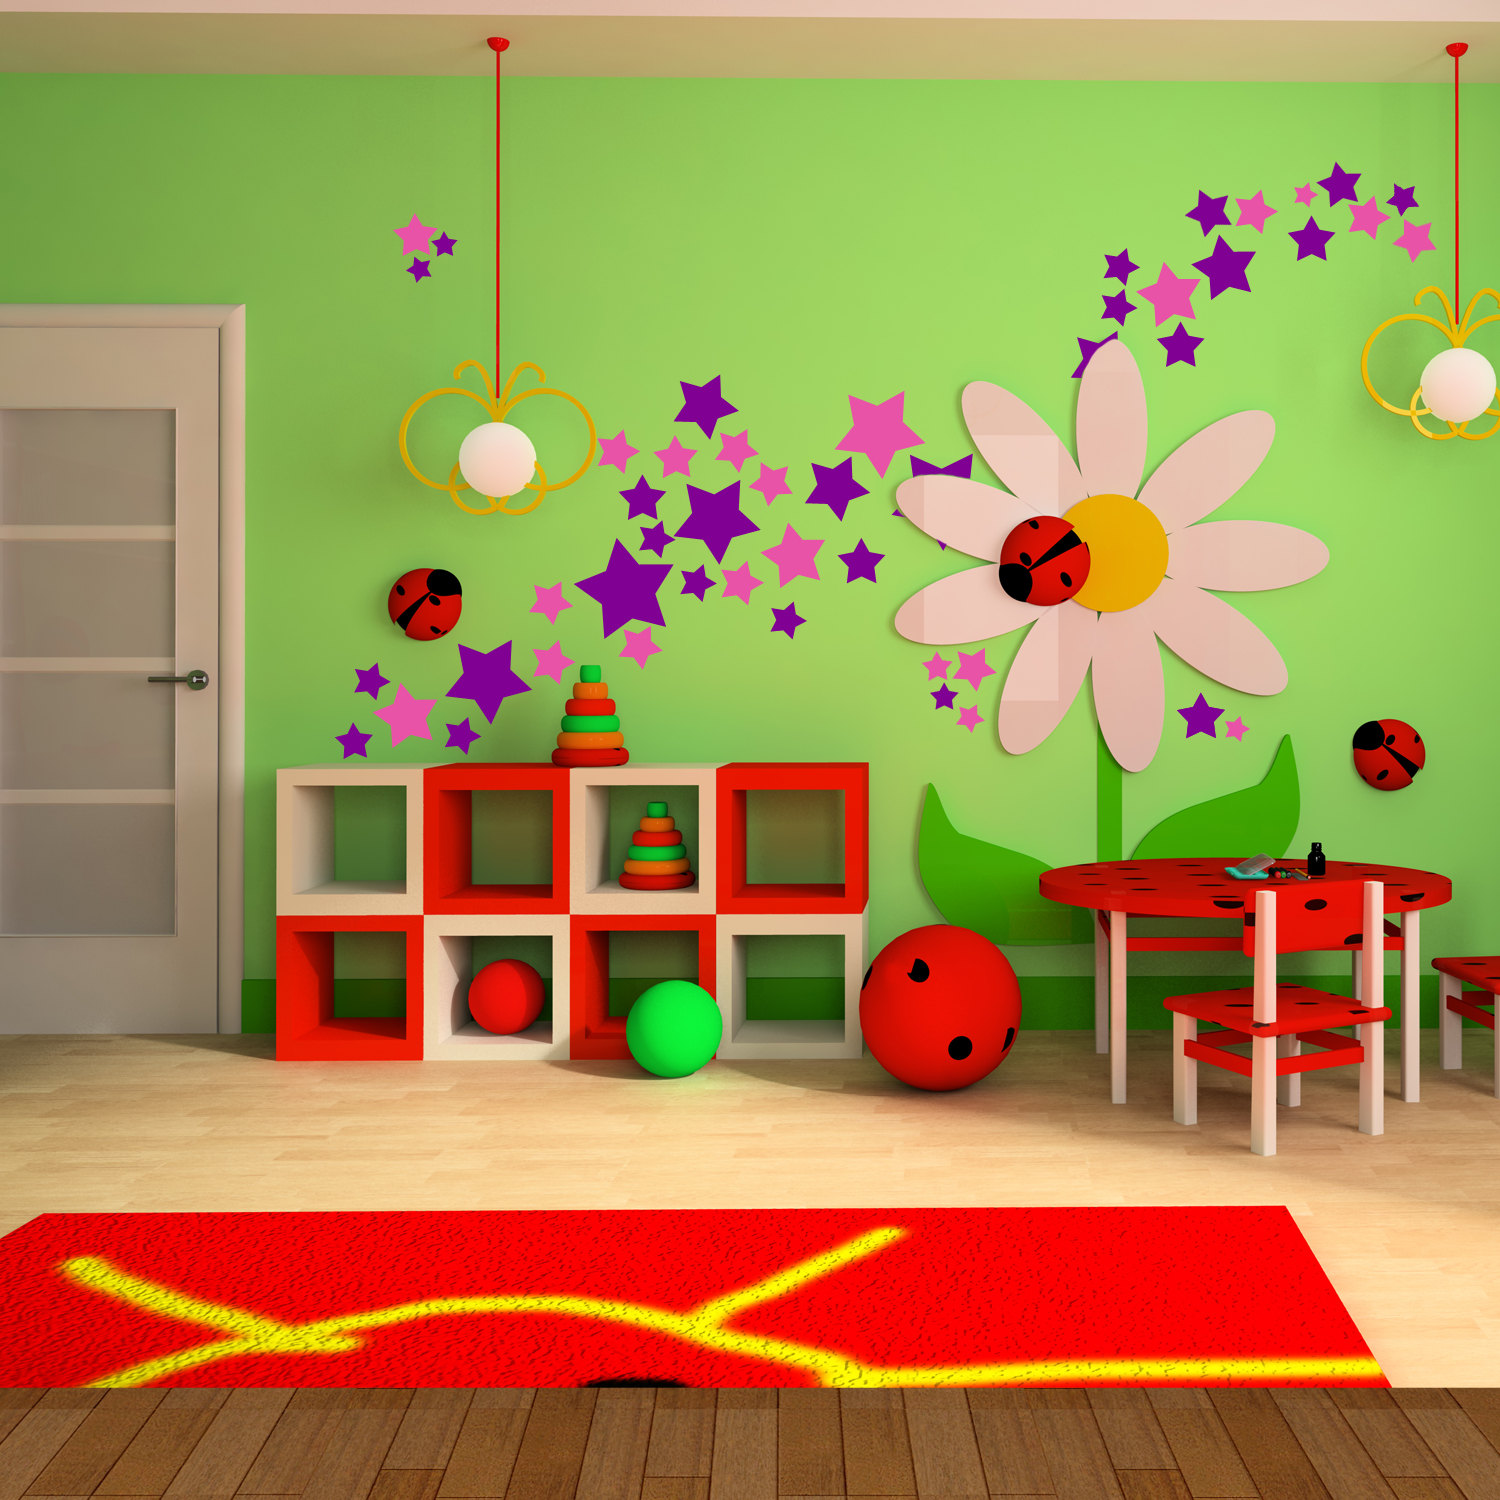 Cutout Wall Decals Peel Amp Stick Wallpaper Printing